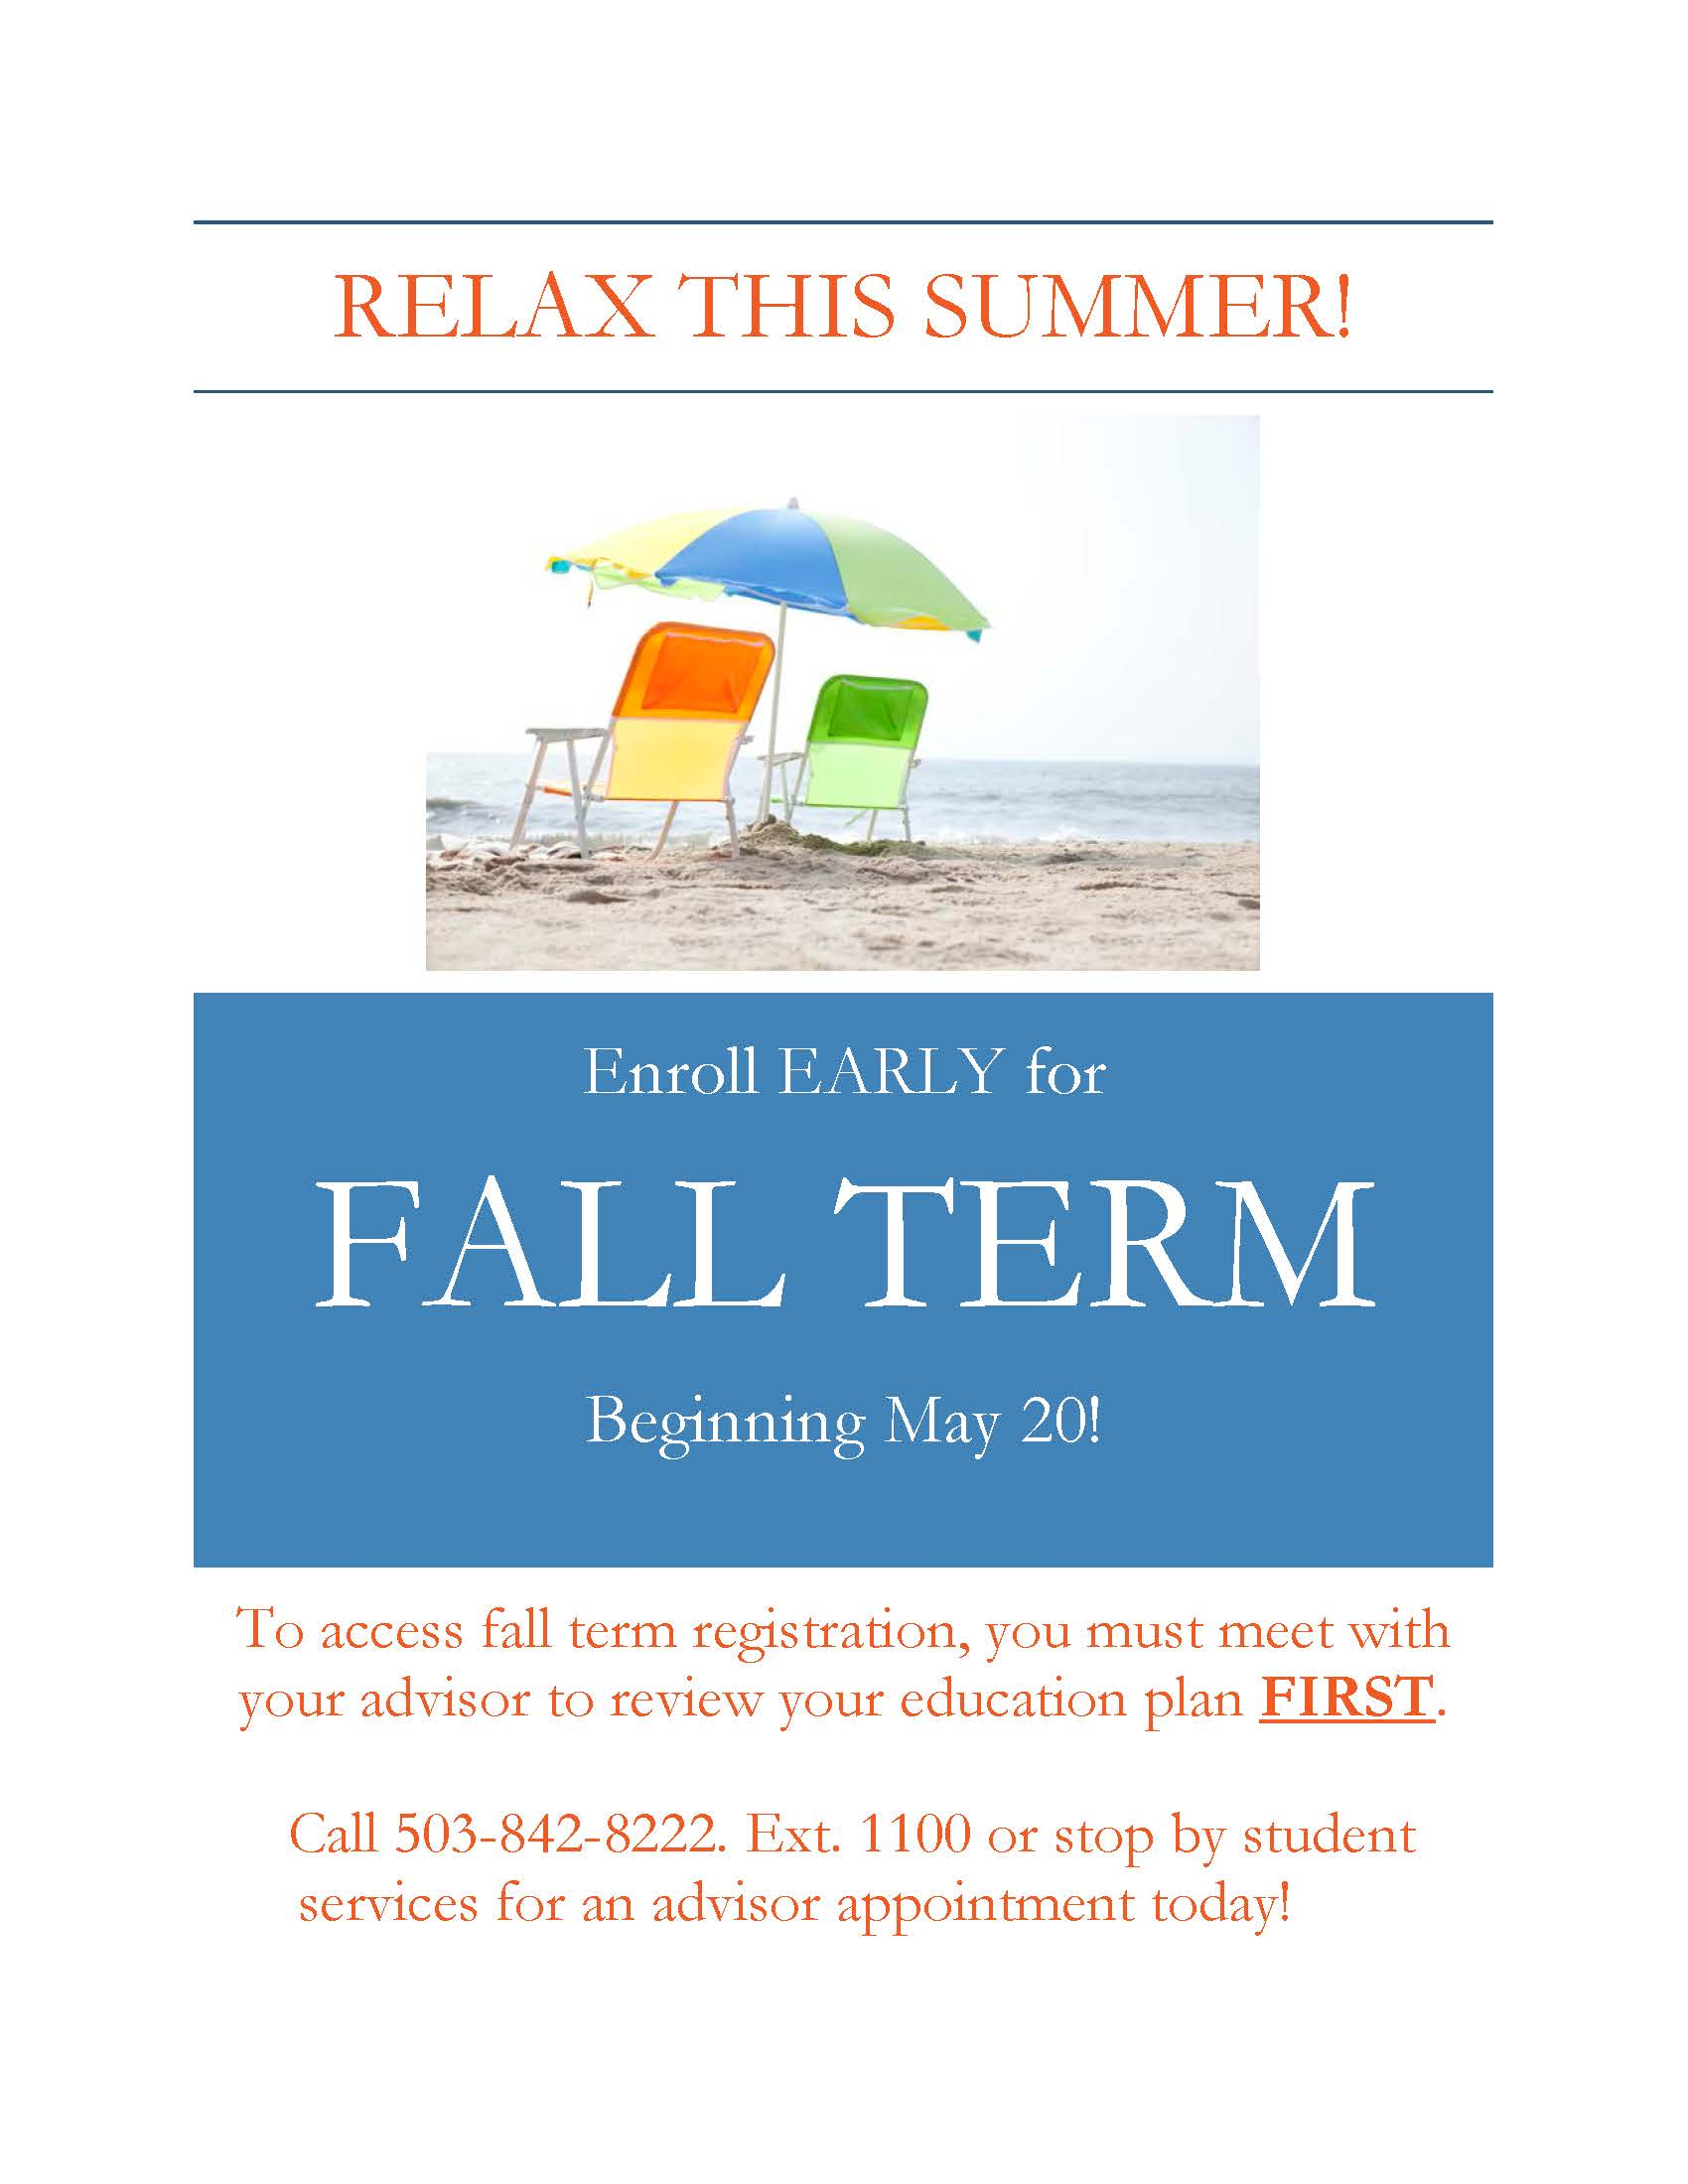 Early Fall Registration Contact Advising